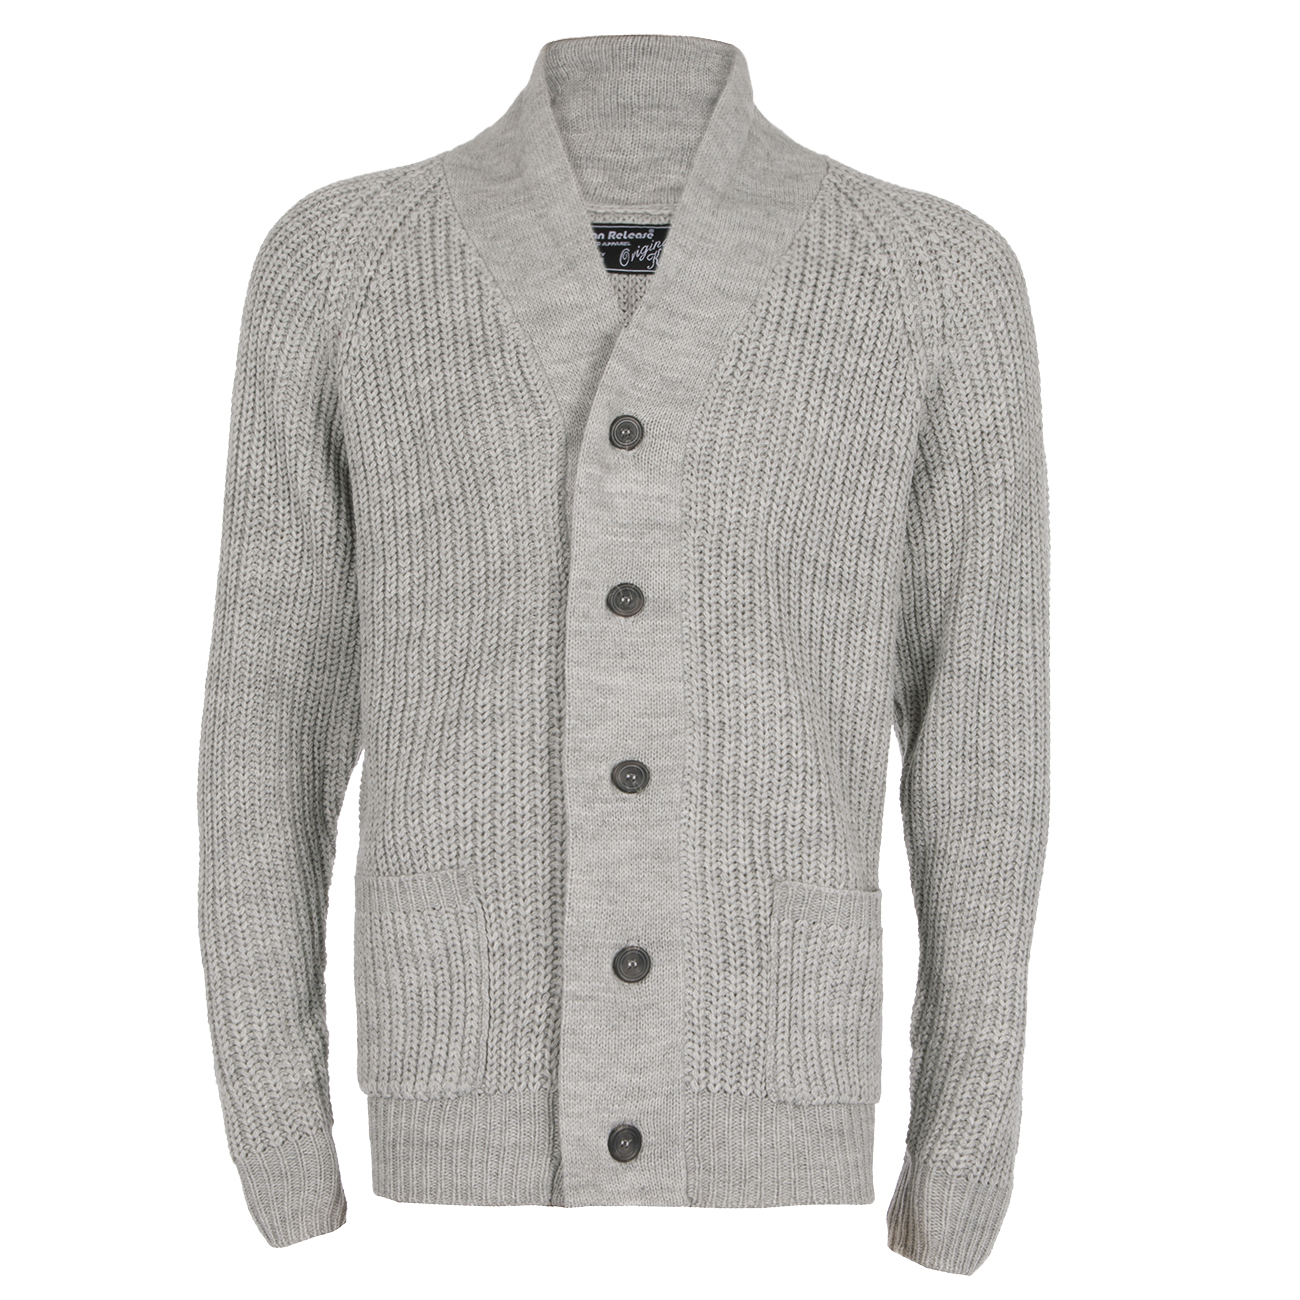 Mens Shawl Collar Cardigan Thick Warm Sweater Knitted Plain Cable ...